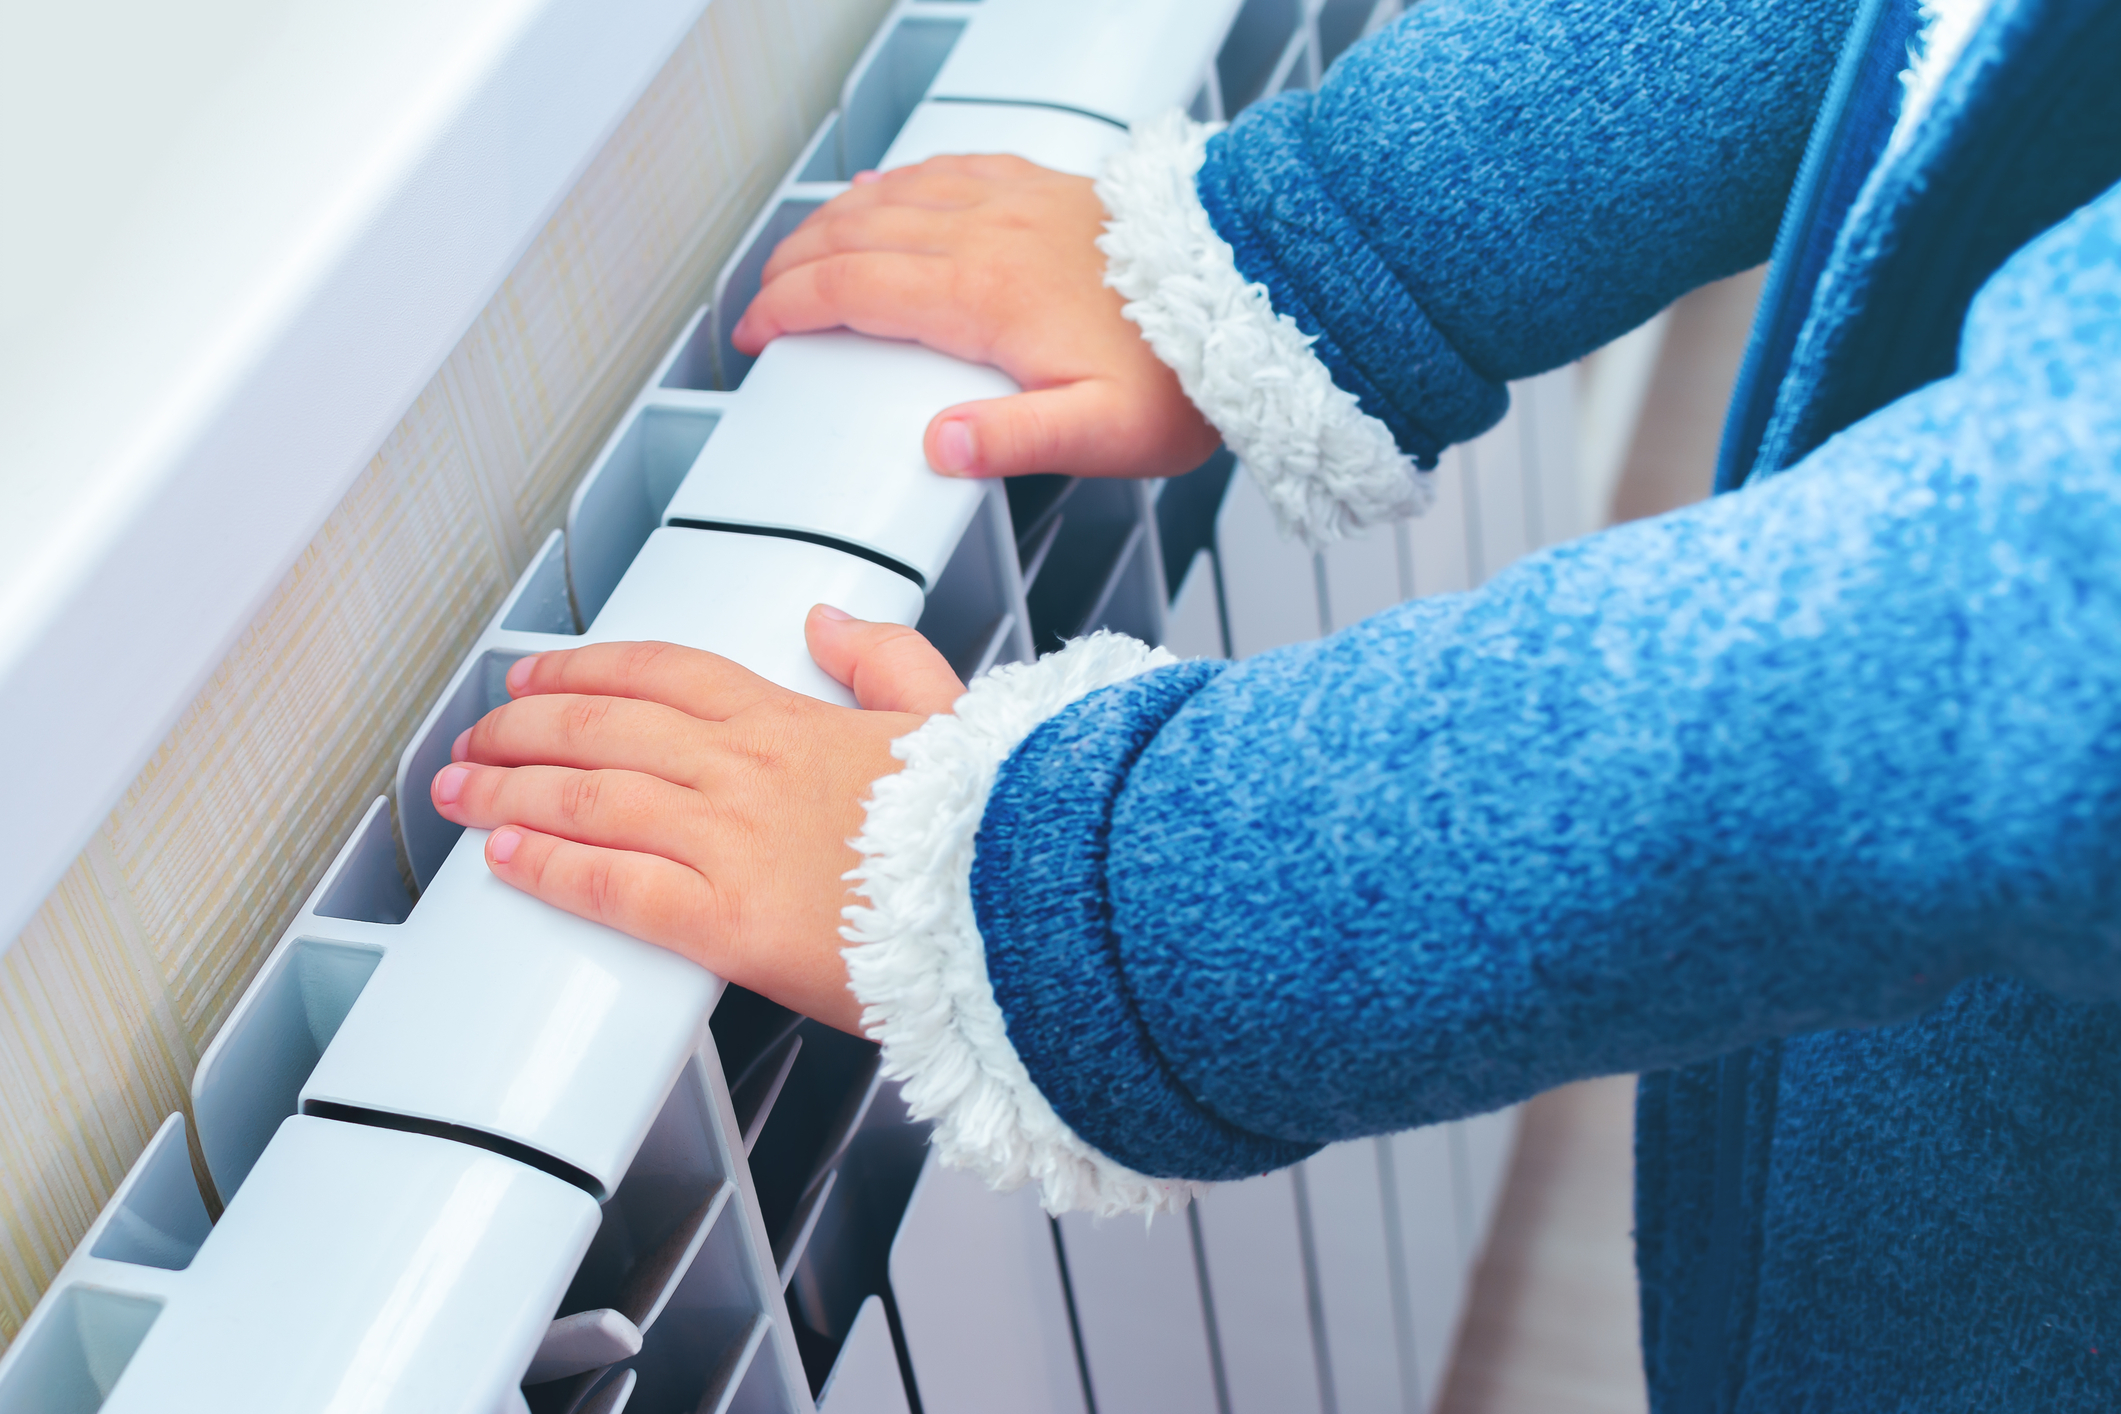 Child warming up their hands over an electric radiator at home